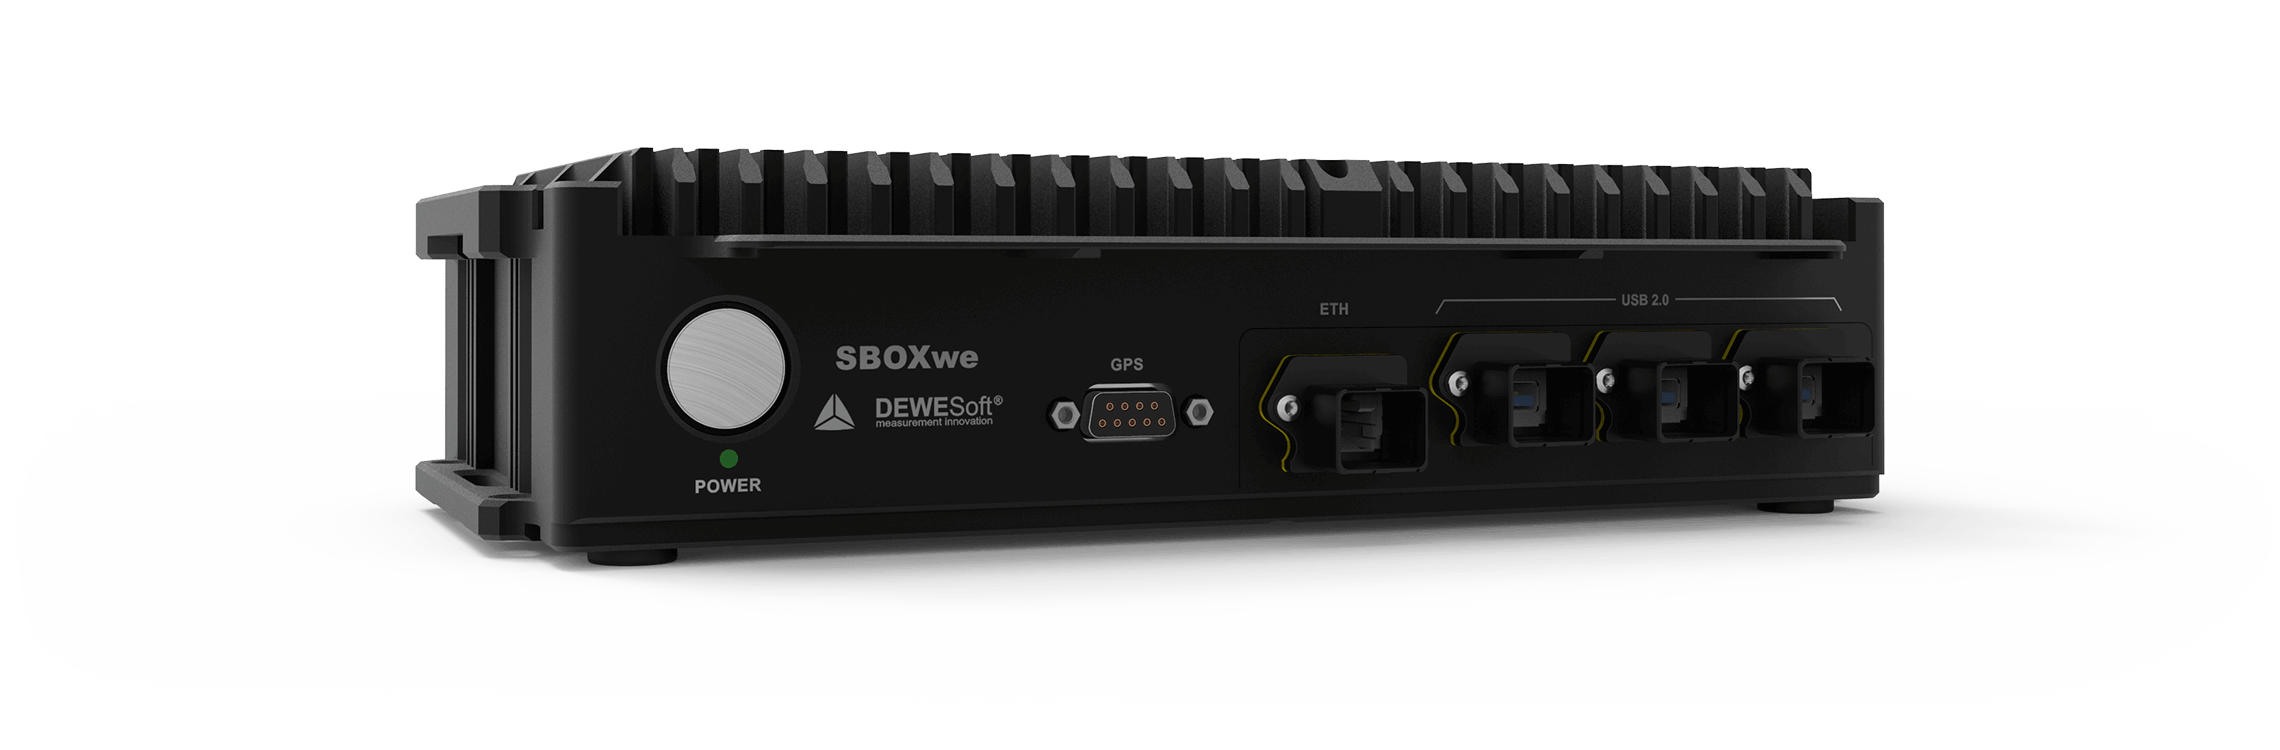 Rugged, IP67 data logger | SBOX waterproof | Dewesoft